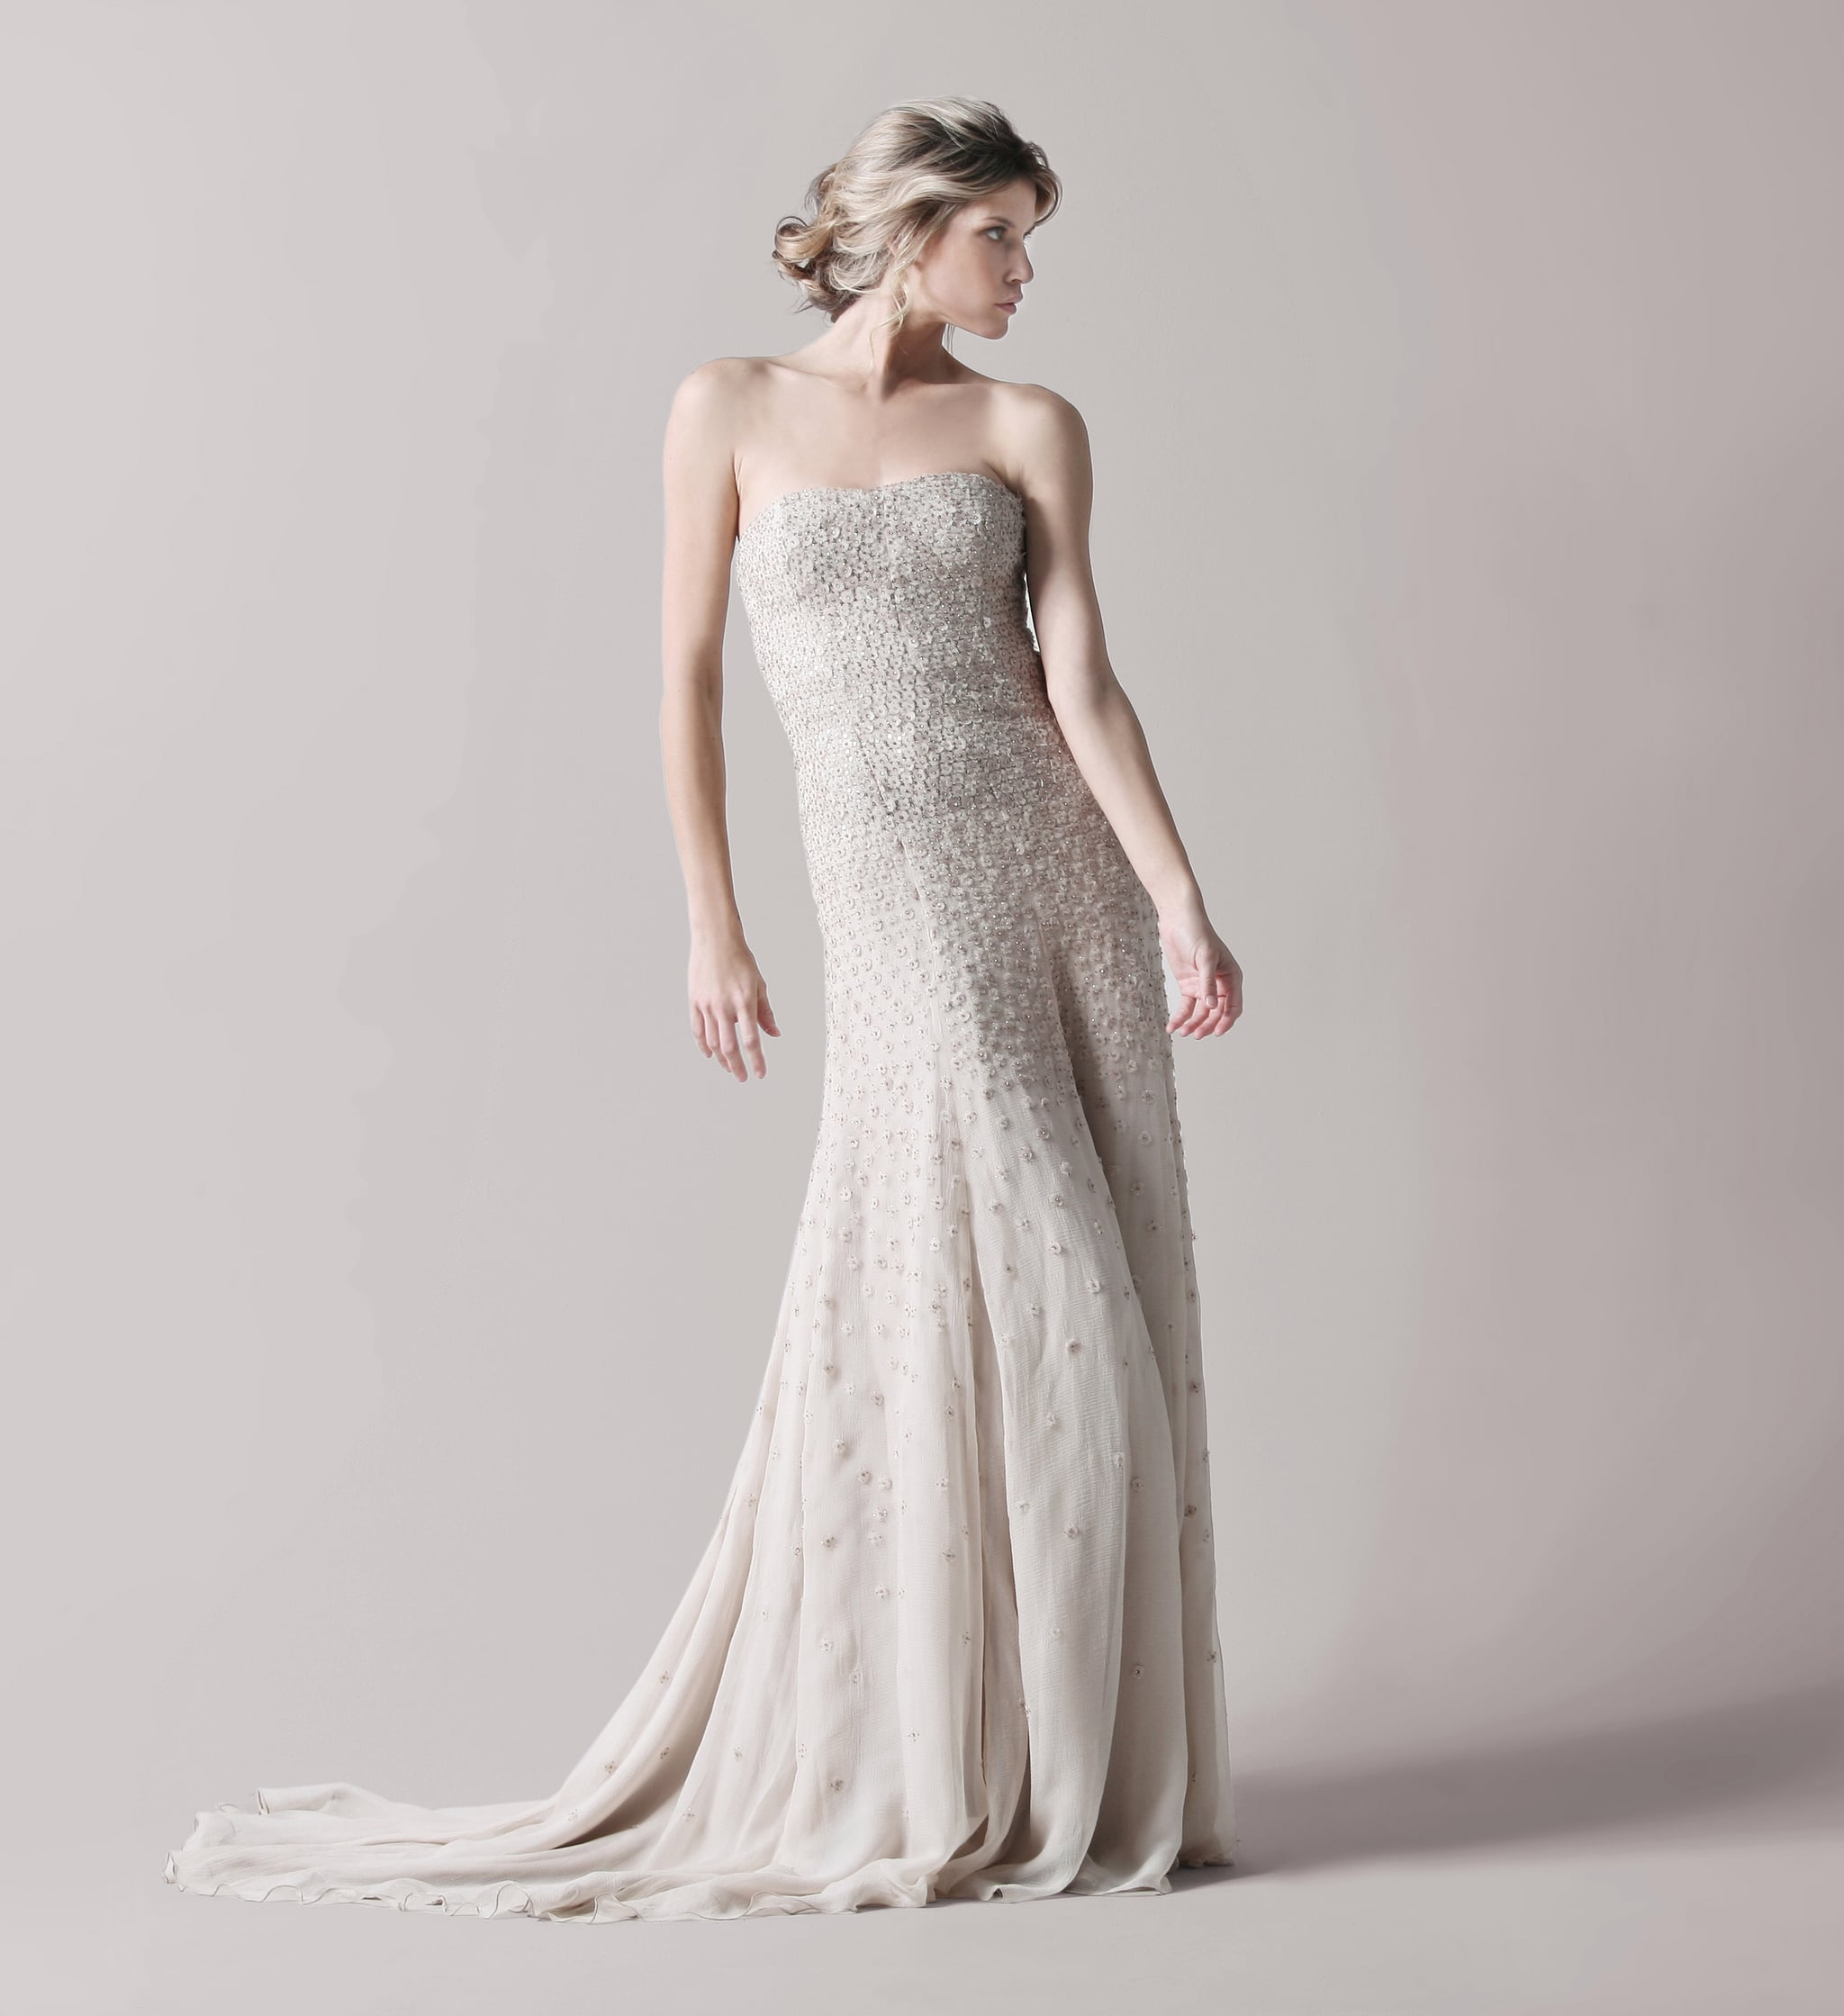 Beaded ivory strapless gown, approx $4981, Lela Rose